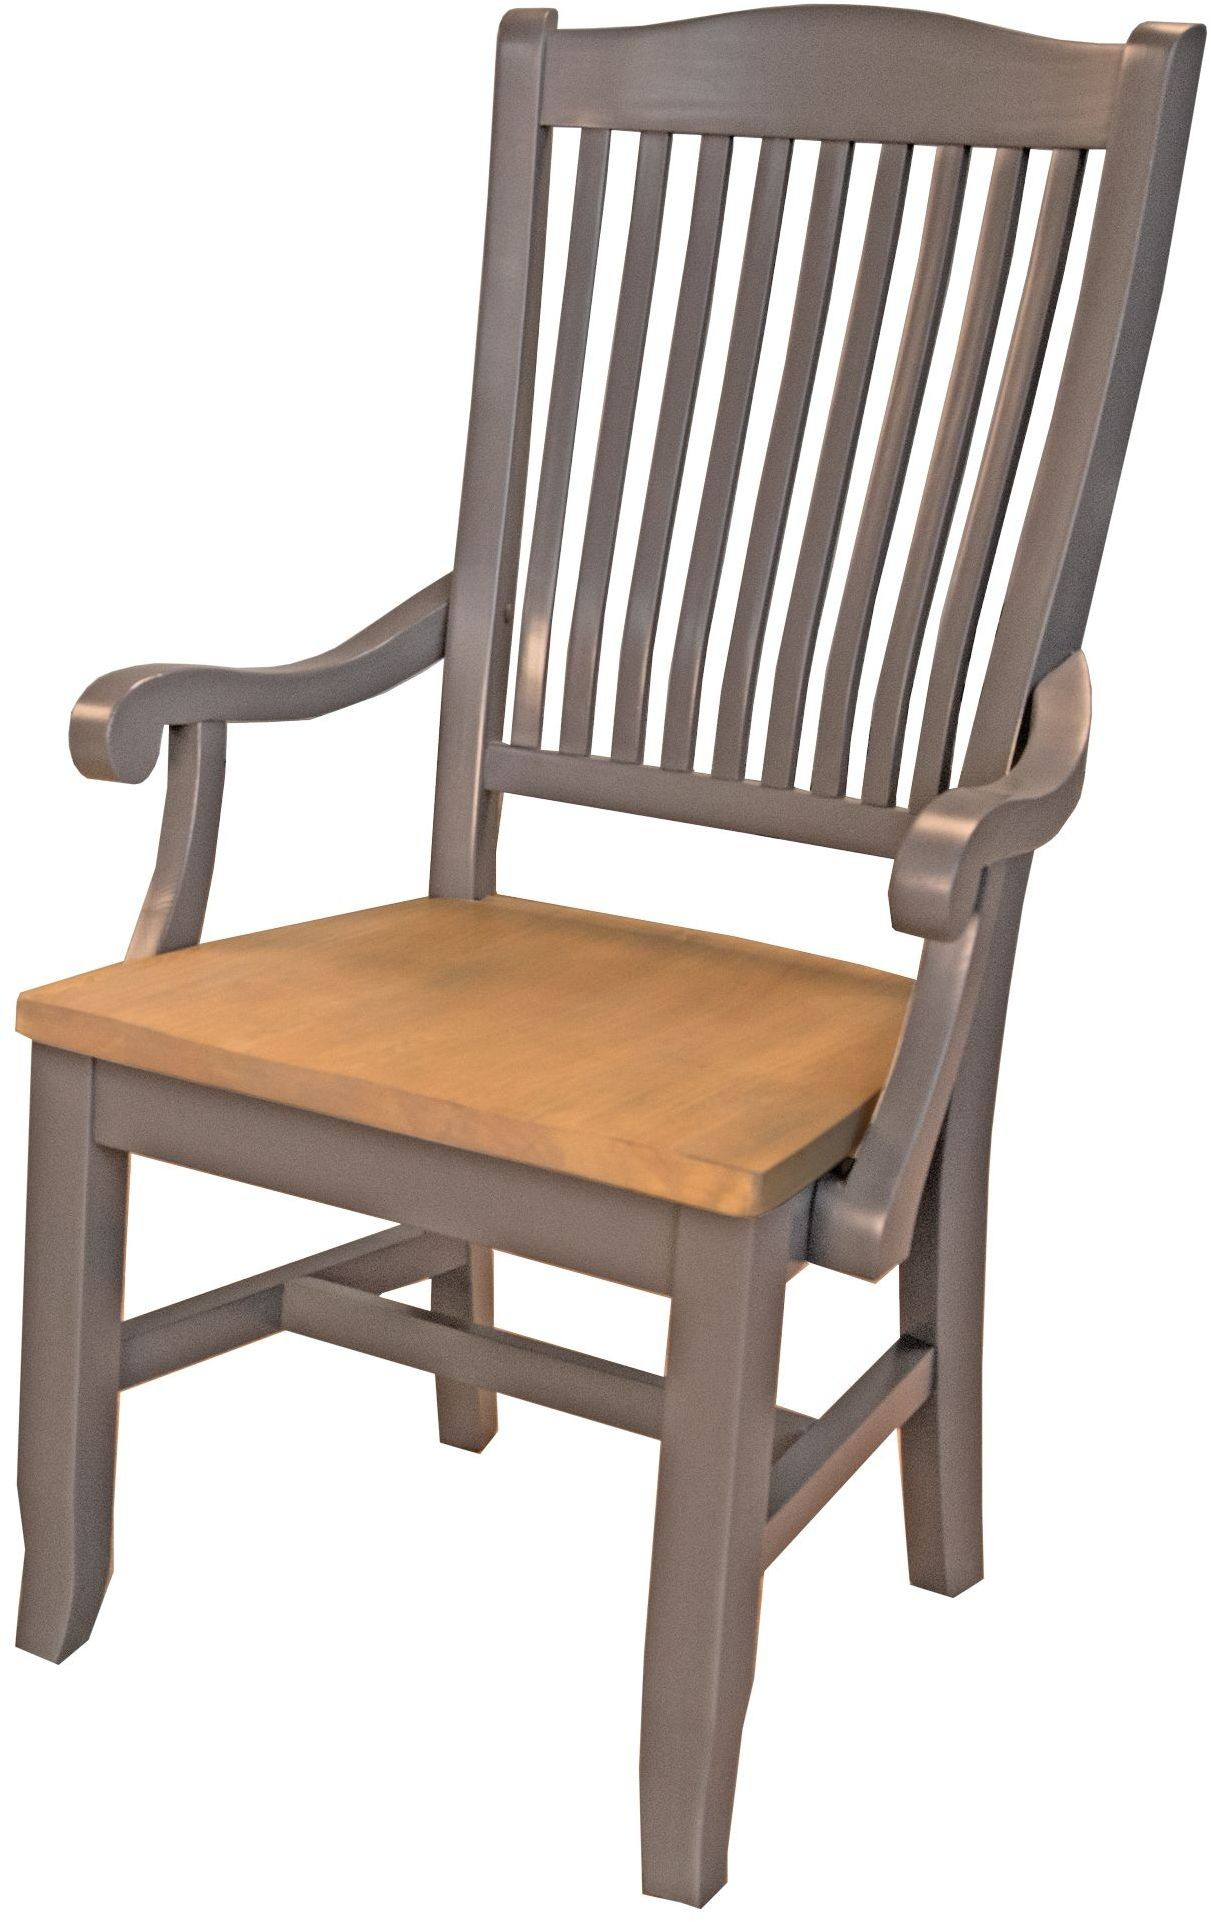 wooden slat chairs red leather desk chair port townsend grey and seaside pine wood back arm